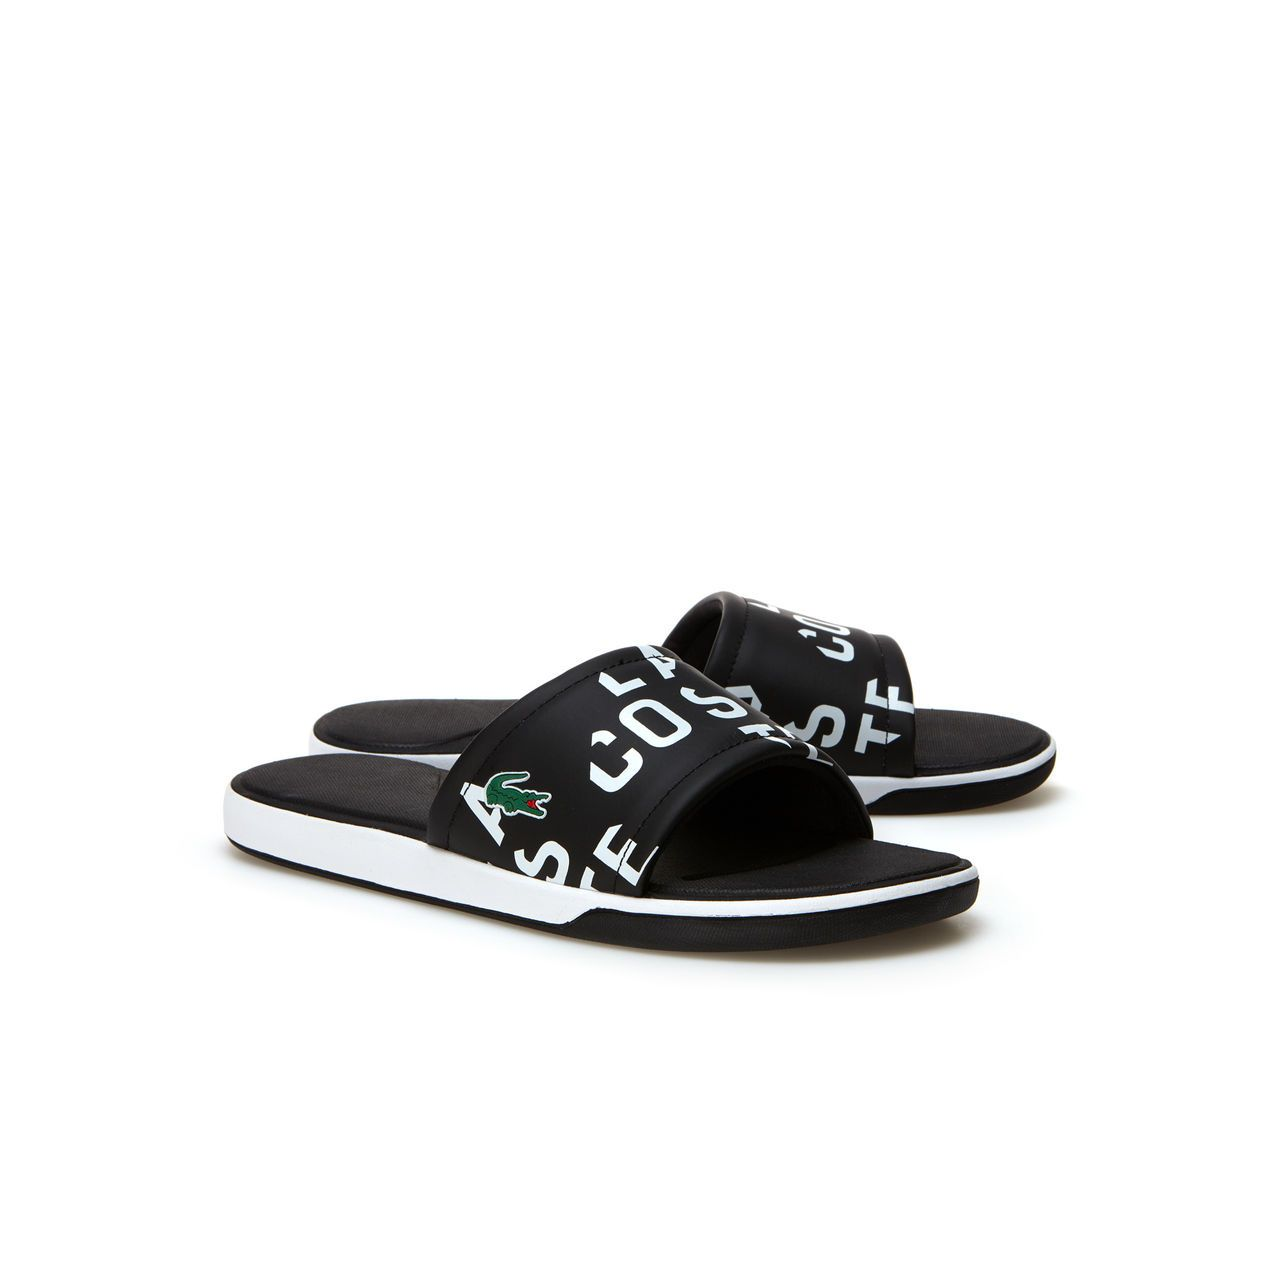 25cac9ae LACOSTE SLIDERS // Slide into Summer at USC! | USC ♡s Sliders in ...